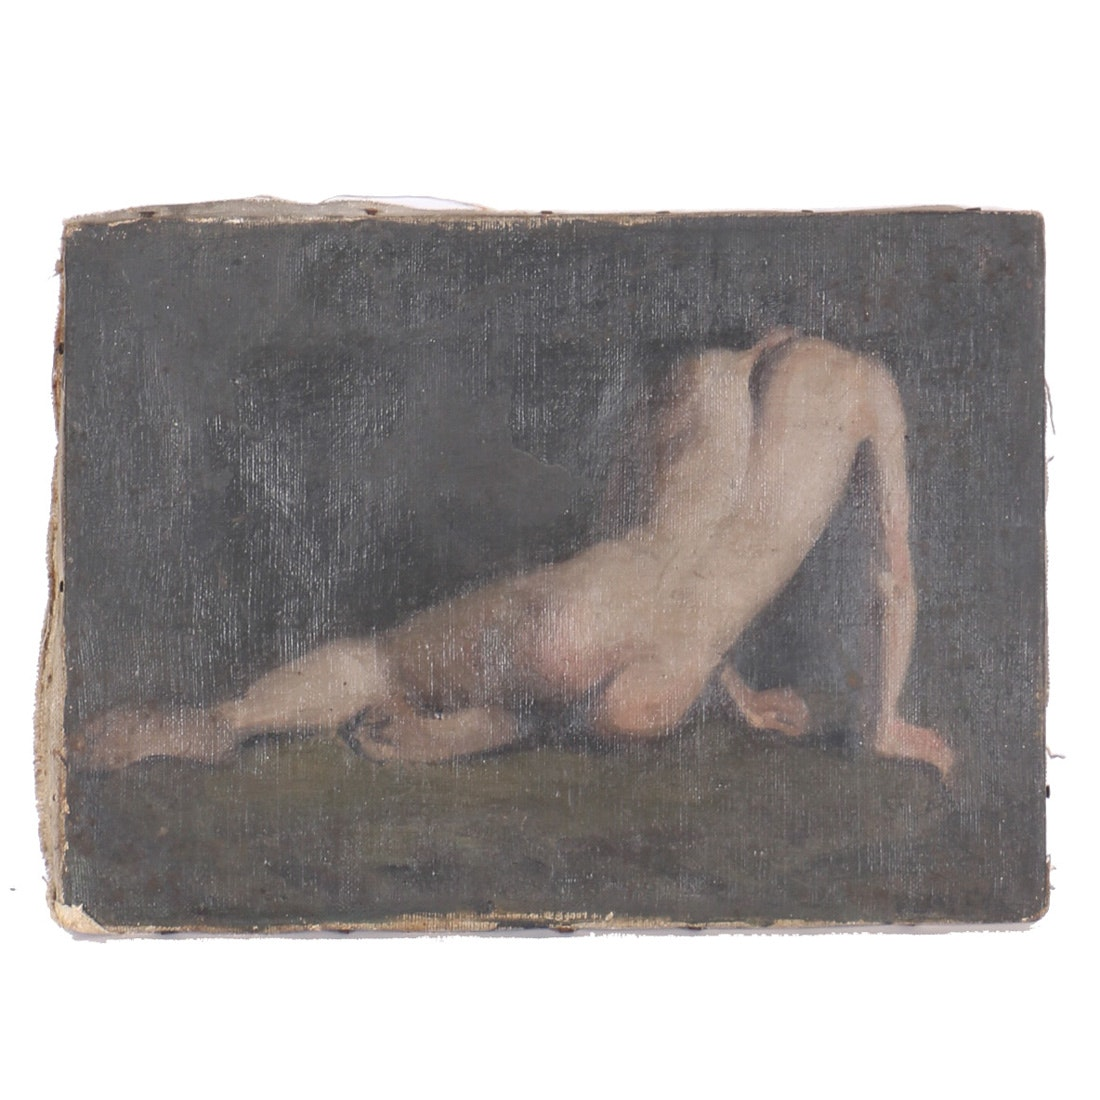 Emily Burling Waite Oil Painting on Canvas of a Nude Figure